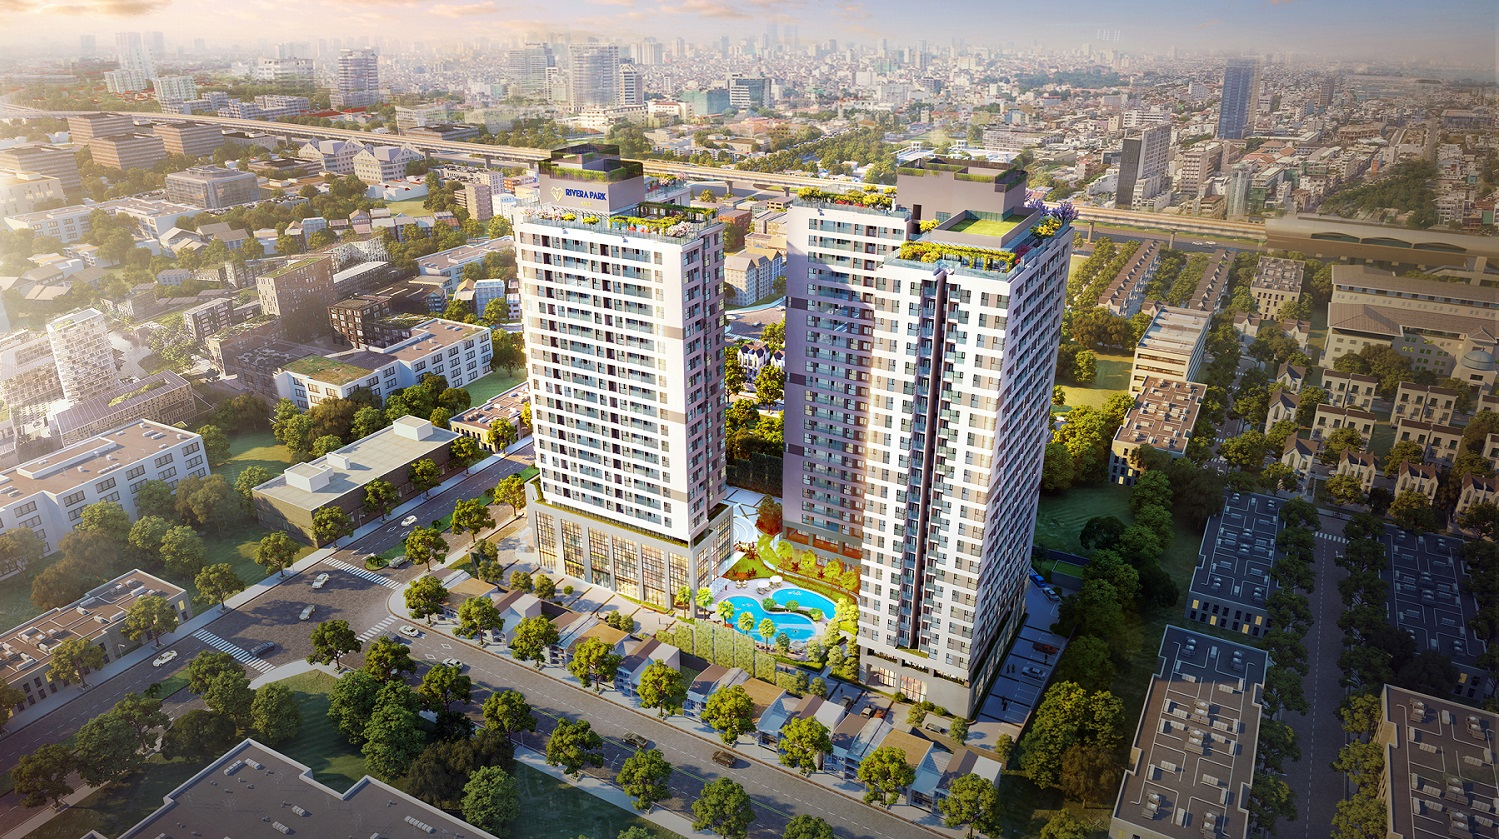 Where is the value of the project to & # 39; live in the Thanh Xuan area?